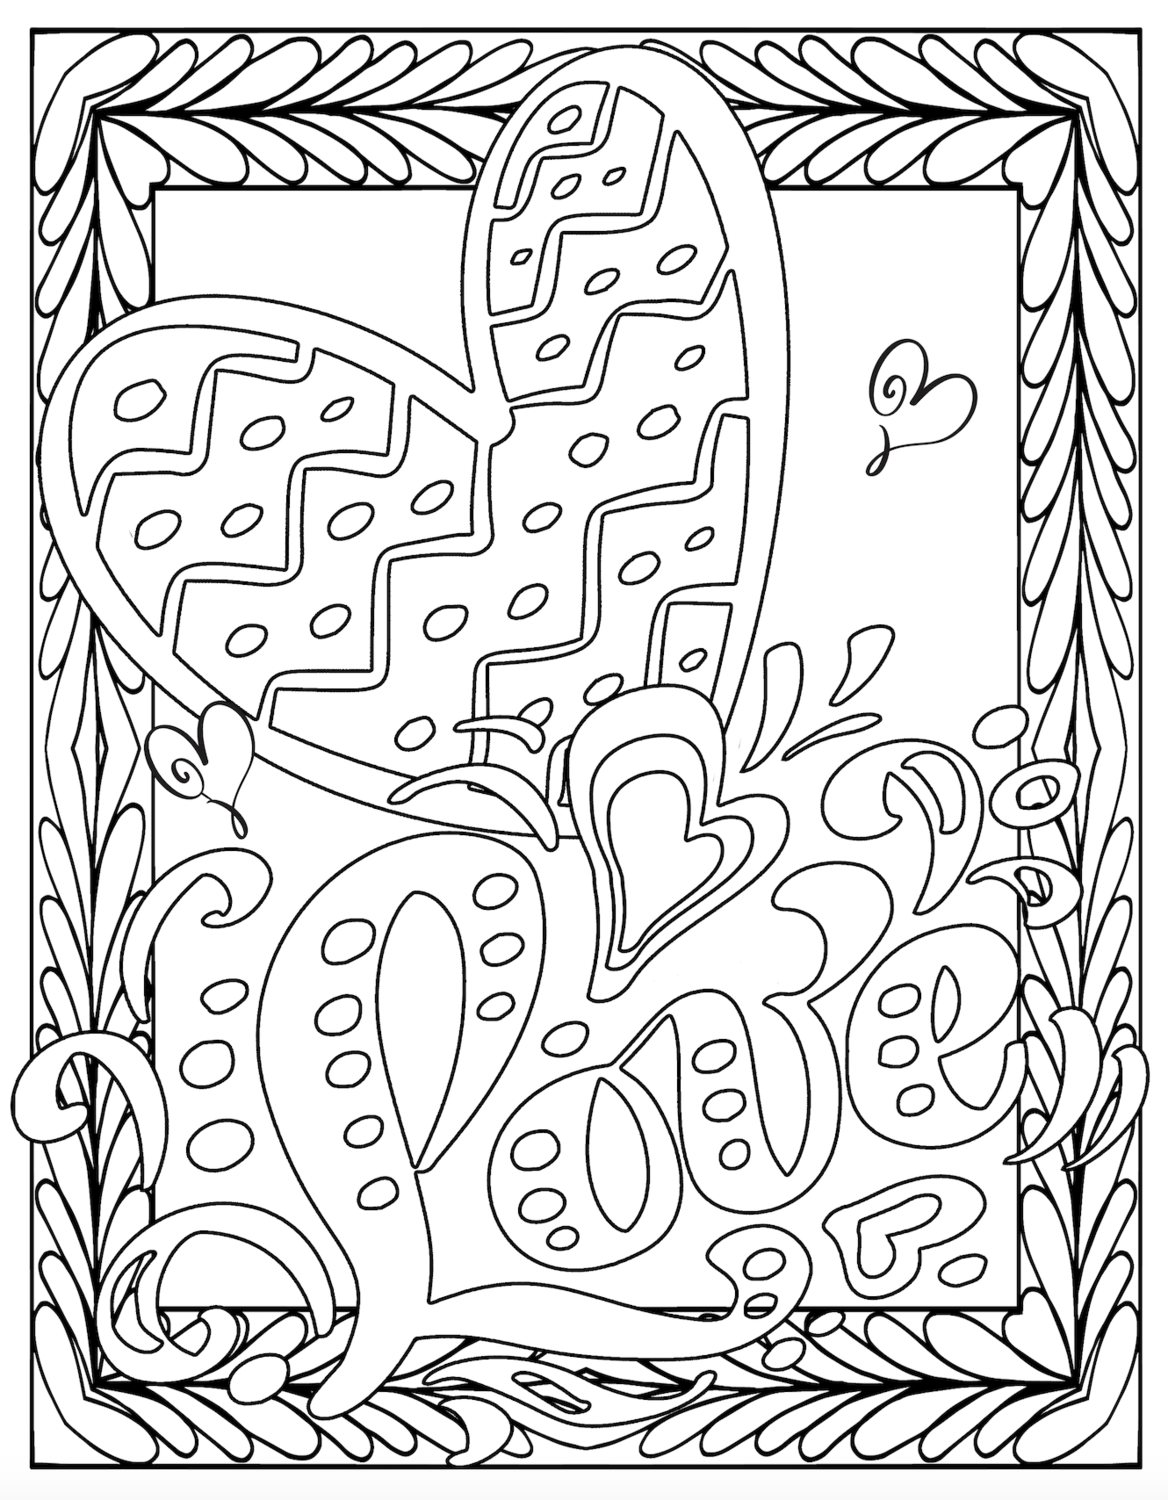 Valentines Day Coloring Pages - GetColoringPages.com | 1500x1168